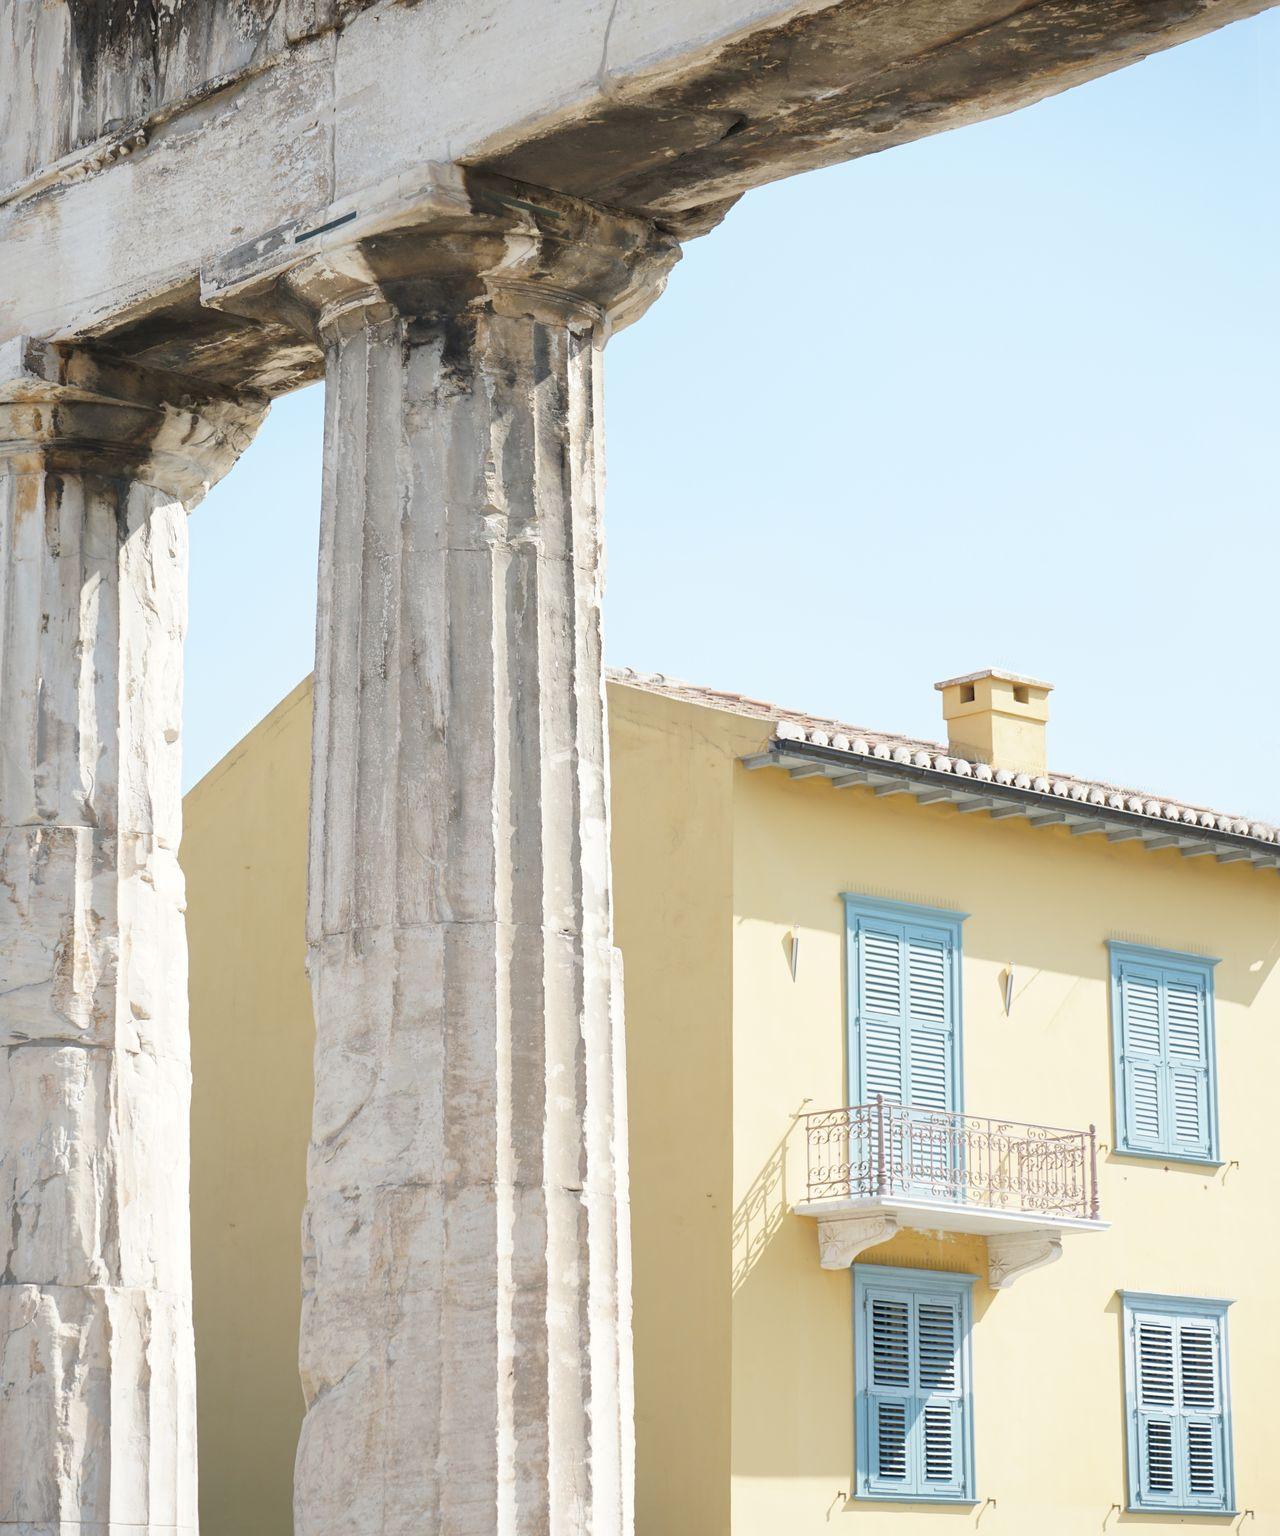 Building by architectural columns